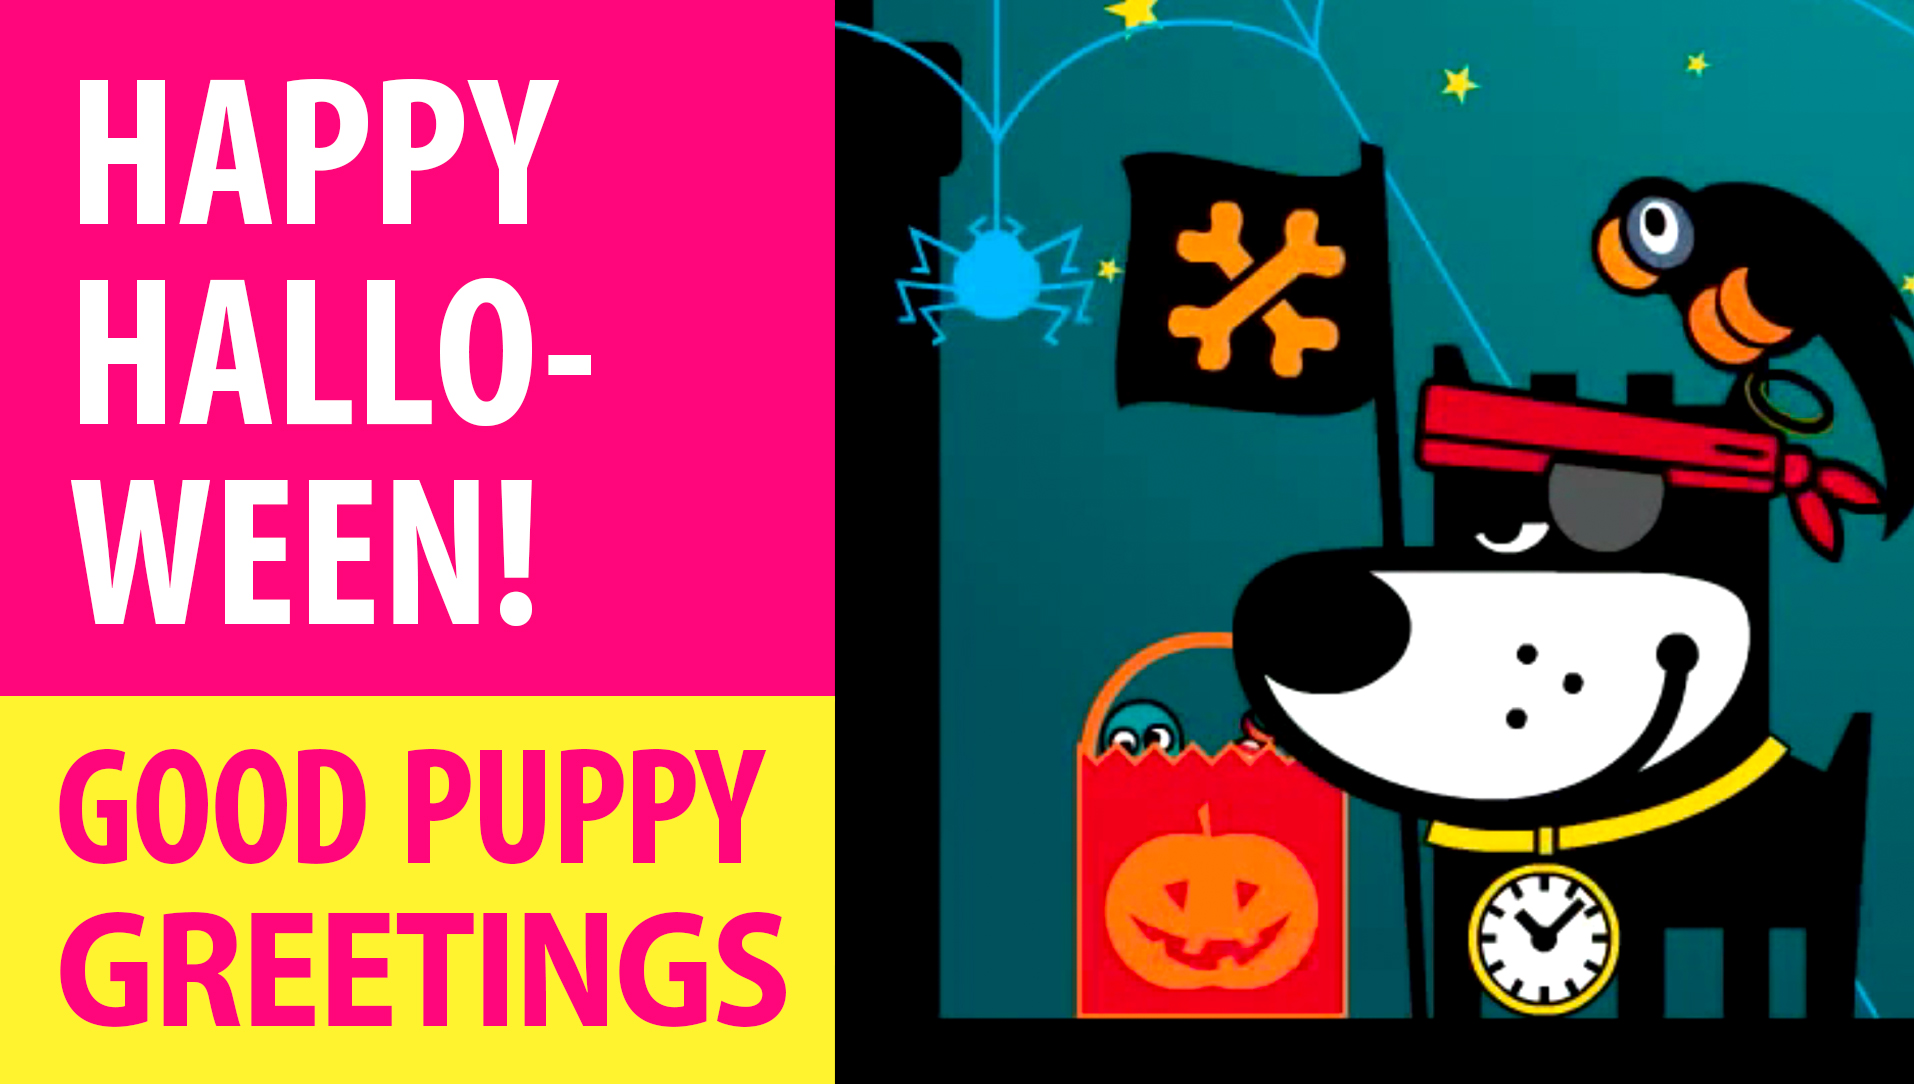 Happy Halloween! Animated Greeting Cards - Free E-Cards By GOOD PUPPY